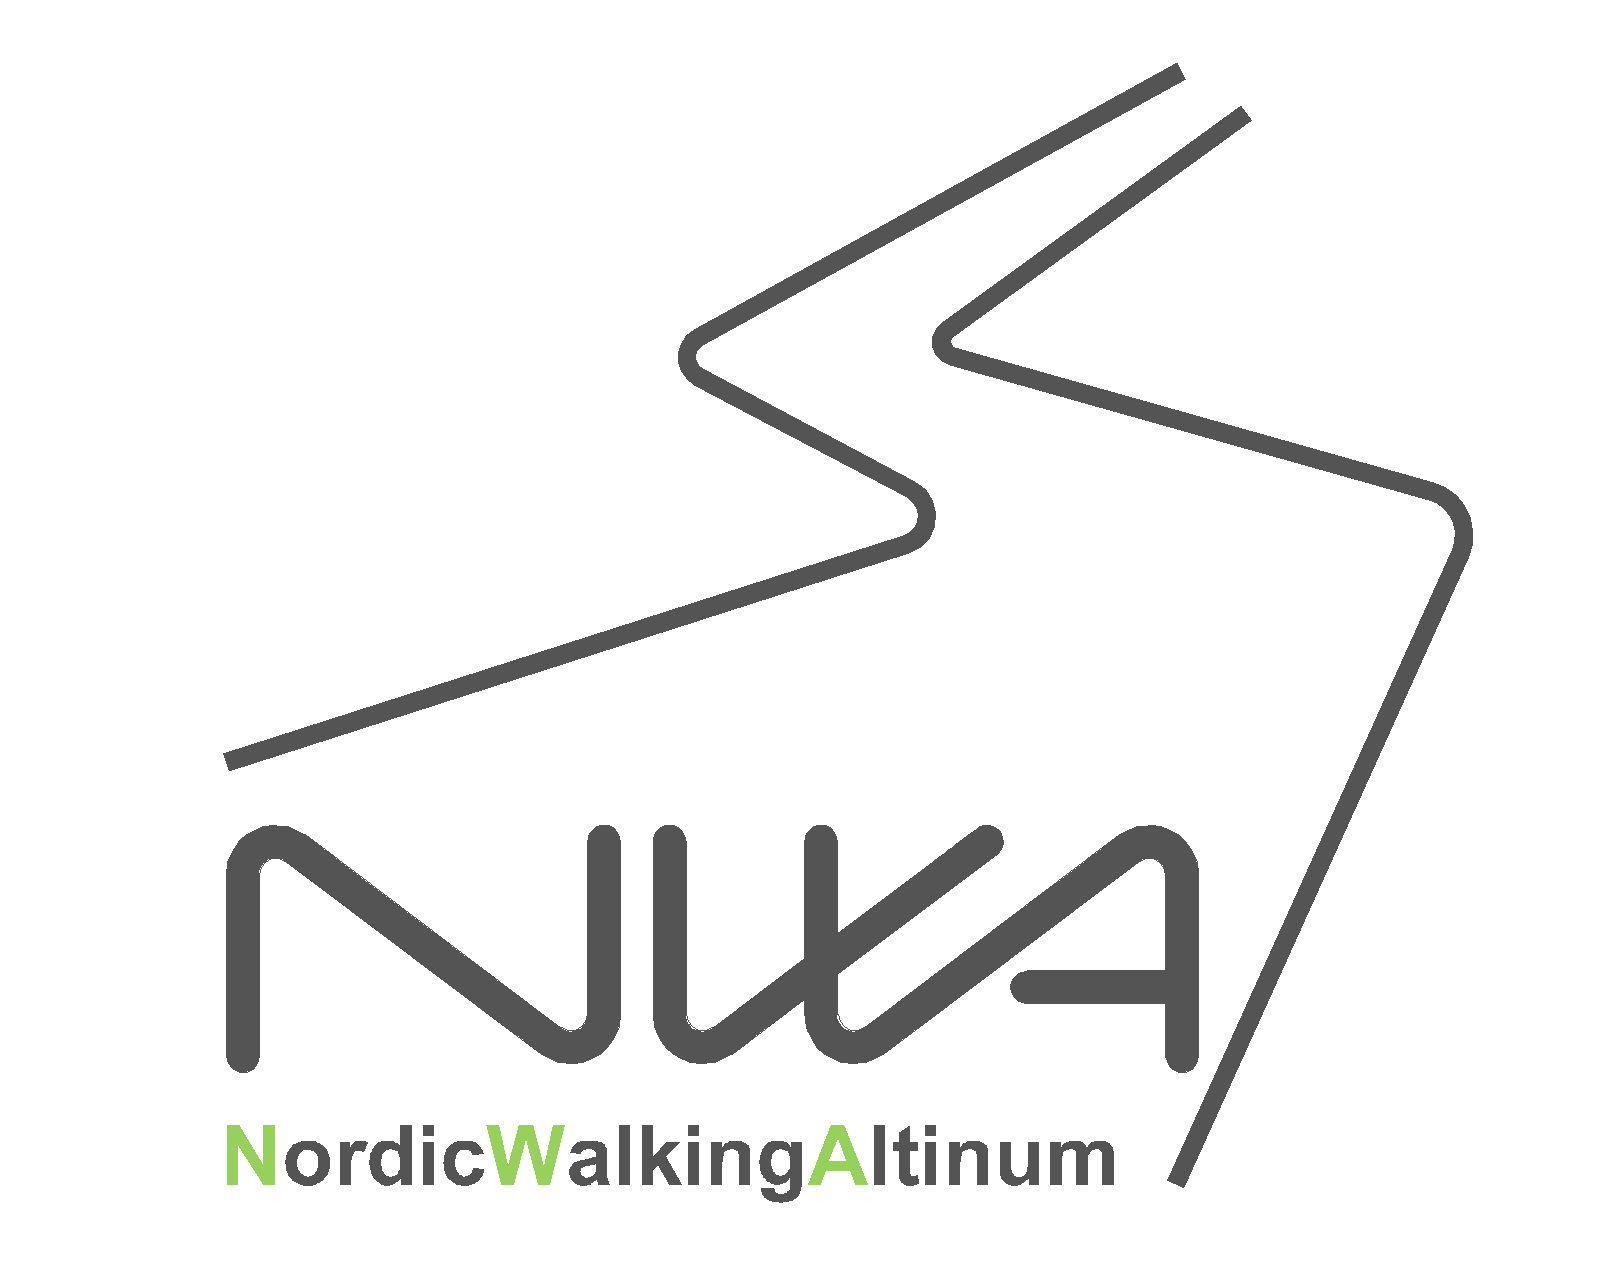 Nordic Walking Altinum